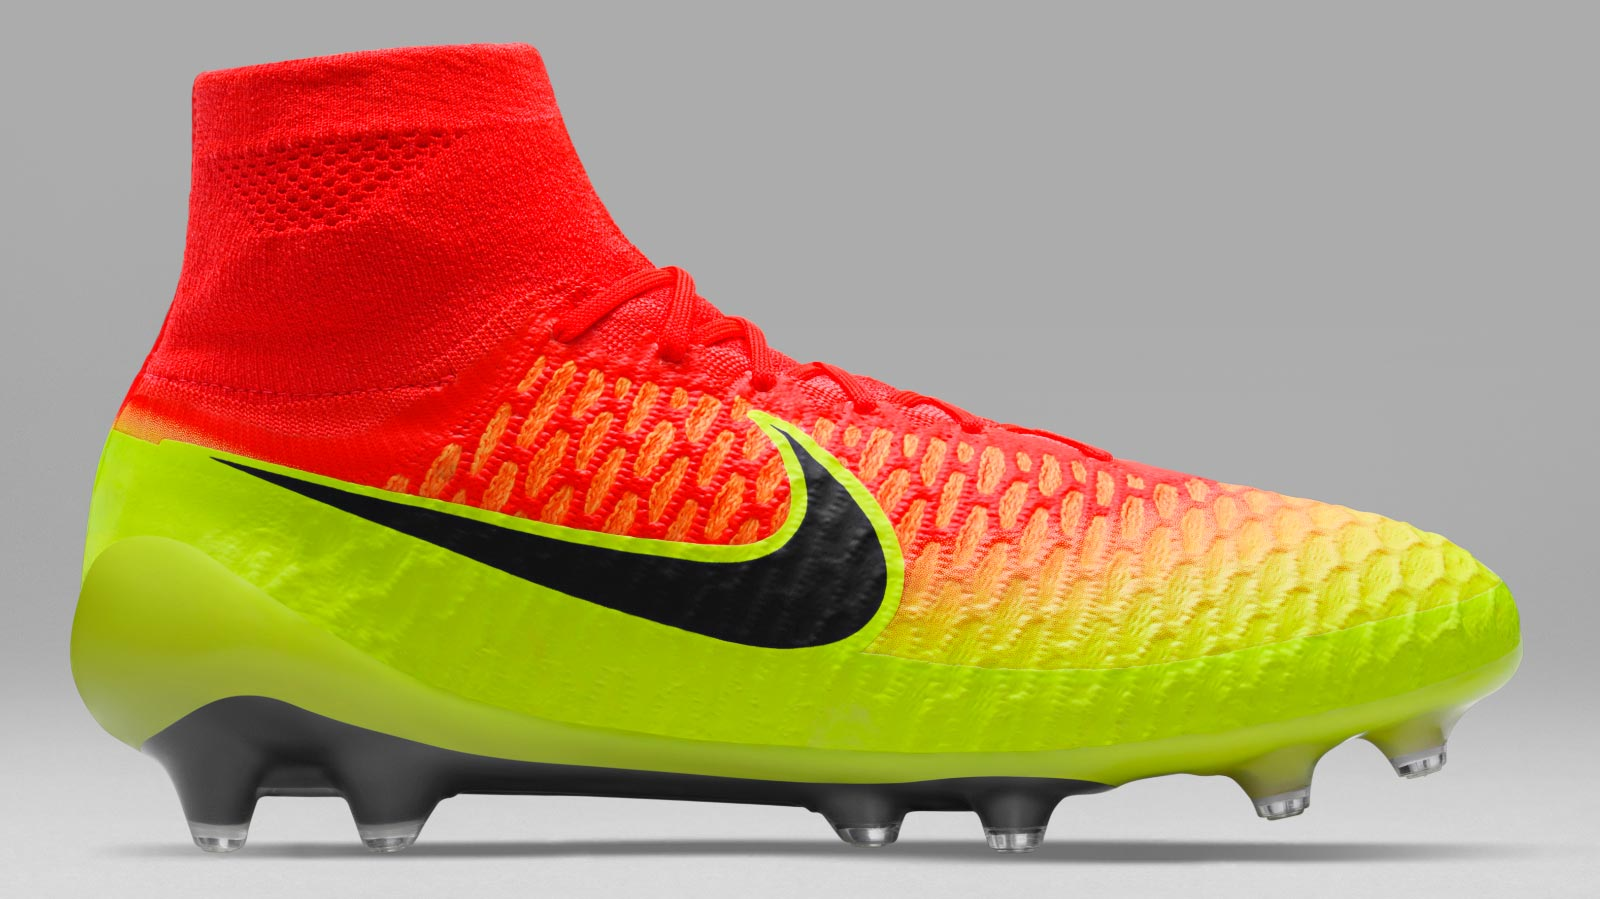 Nike Spark Brilliance Euro 2016